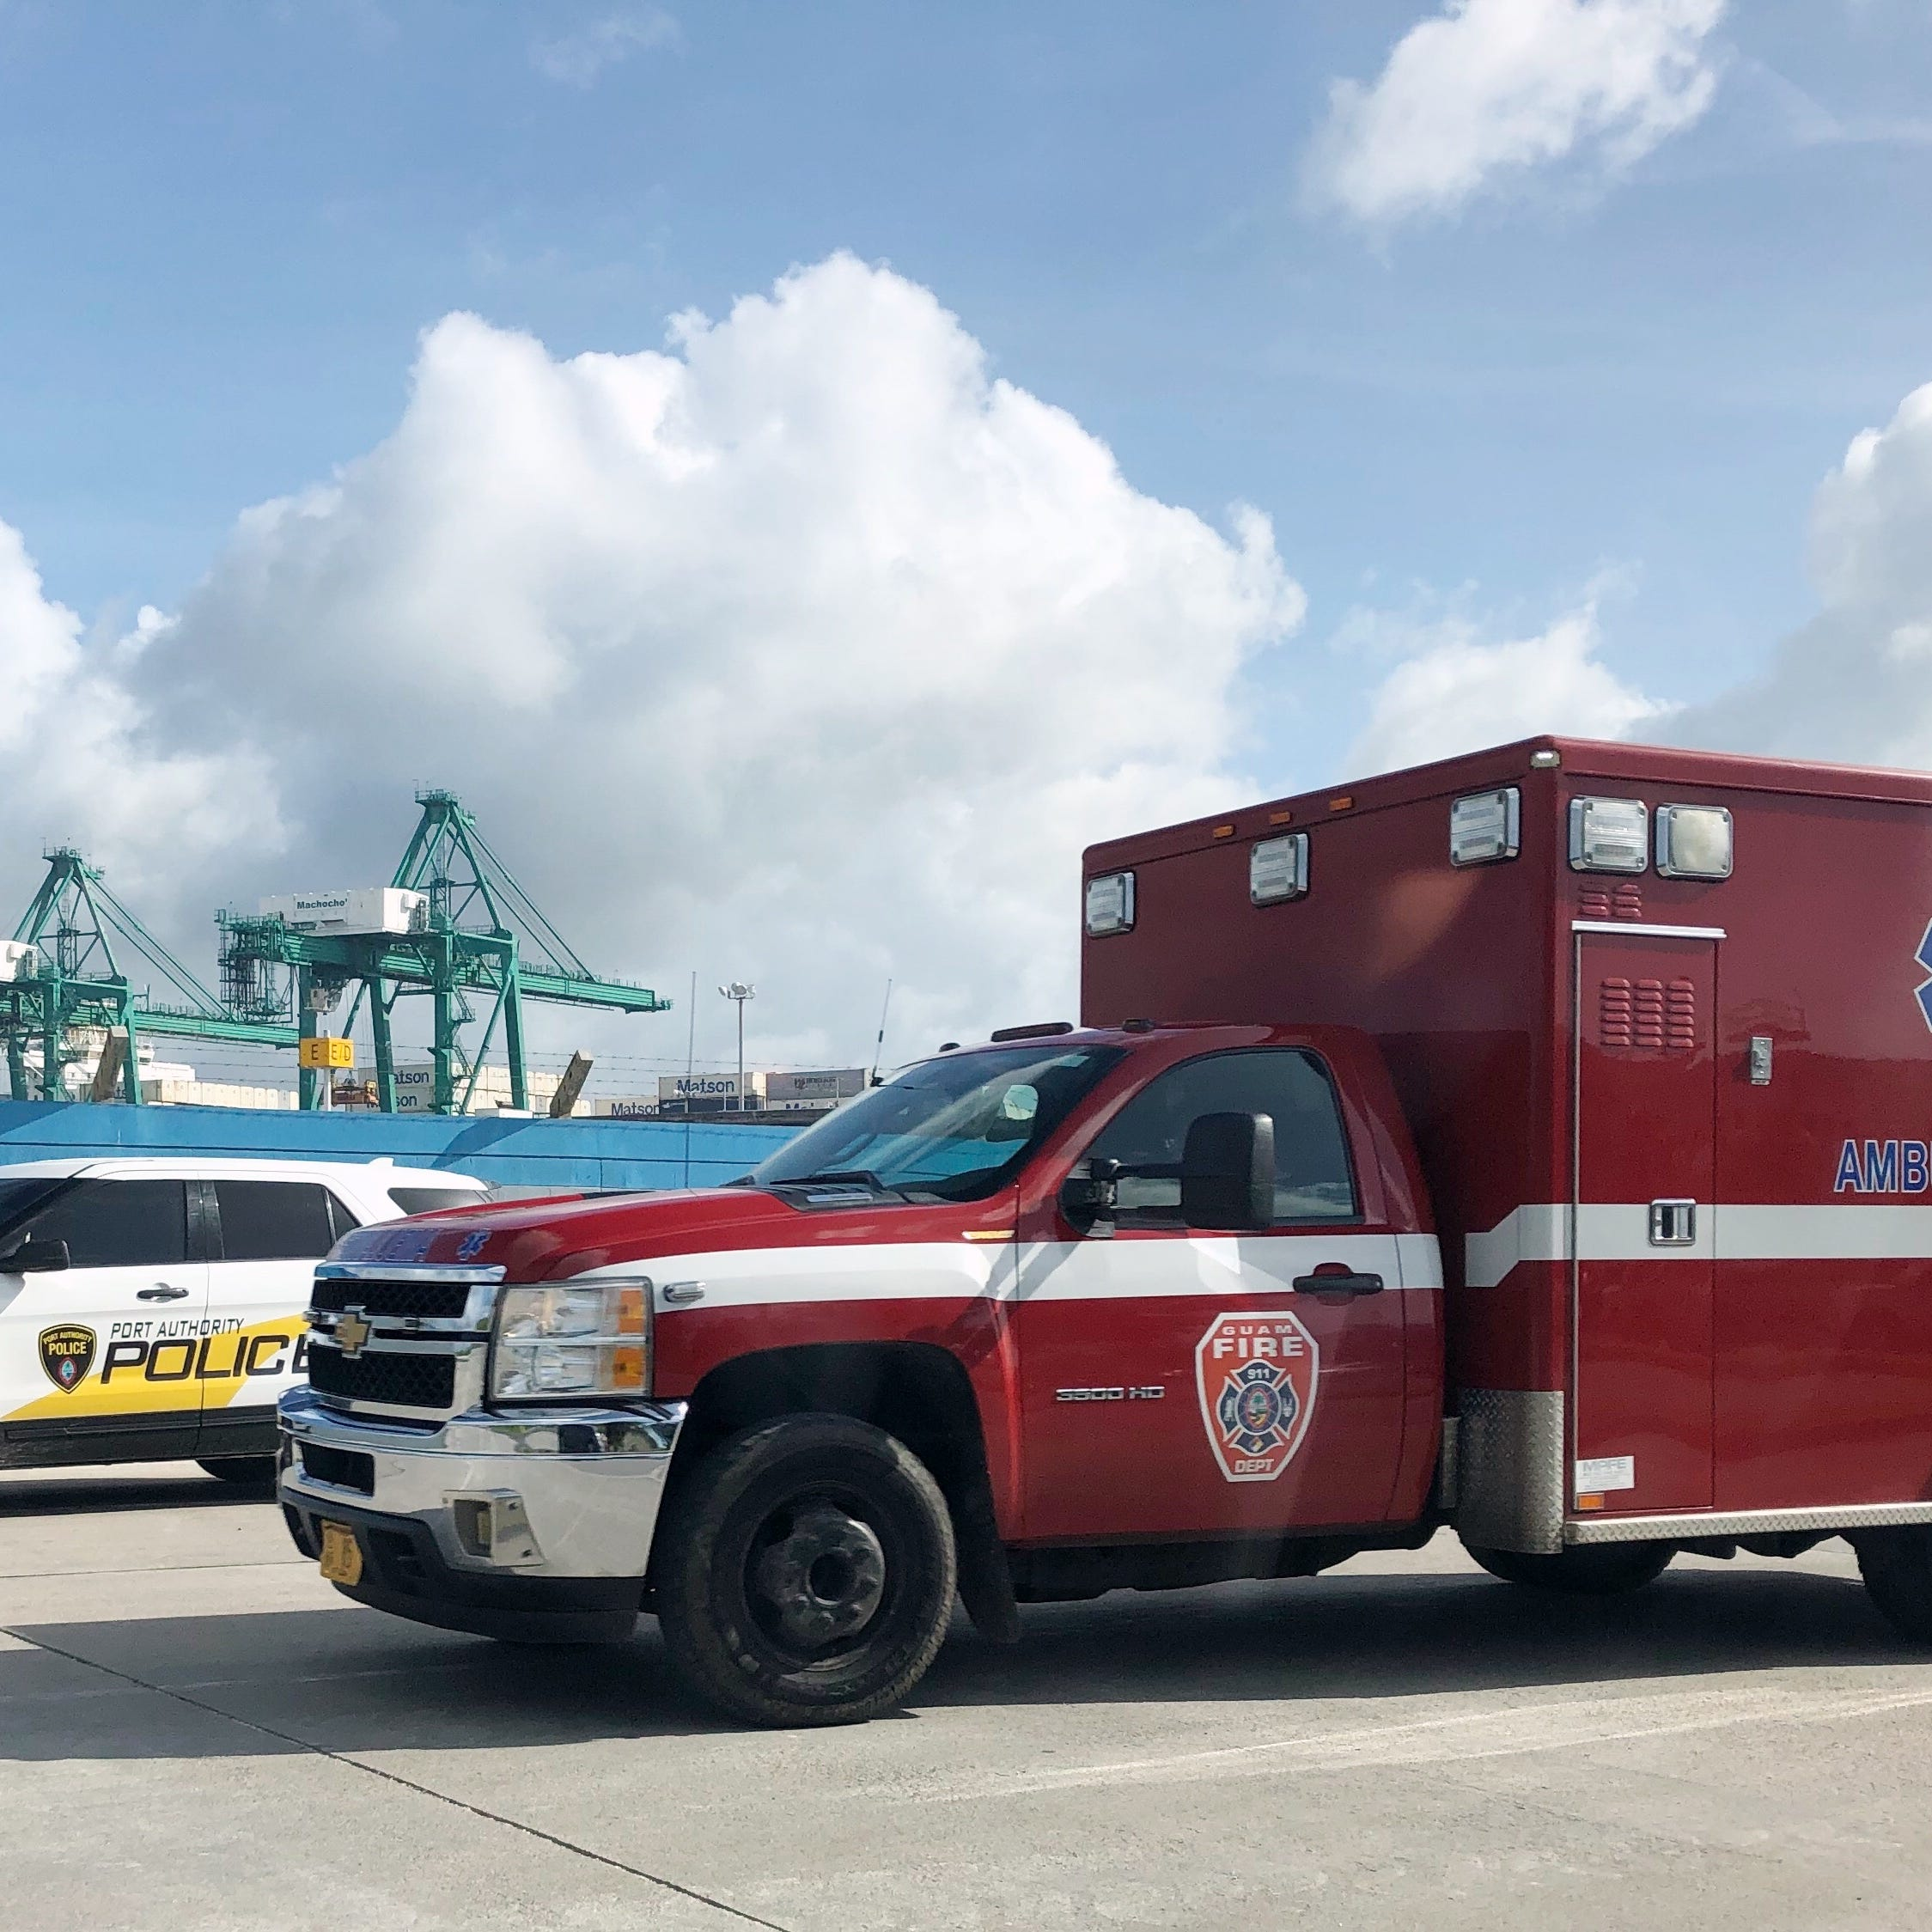 Gantry crane operator injured